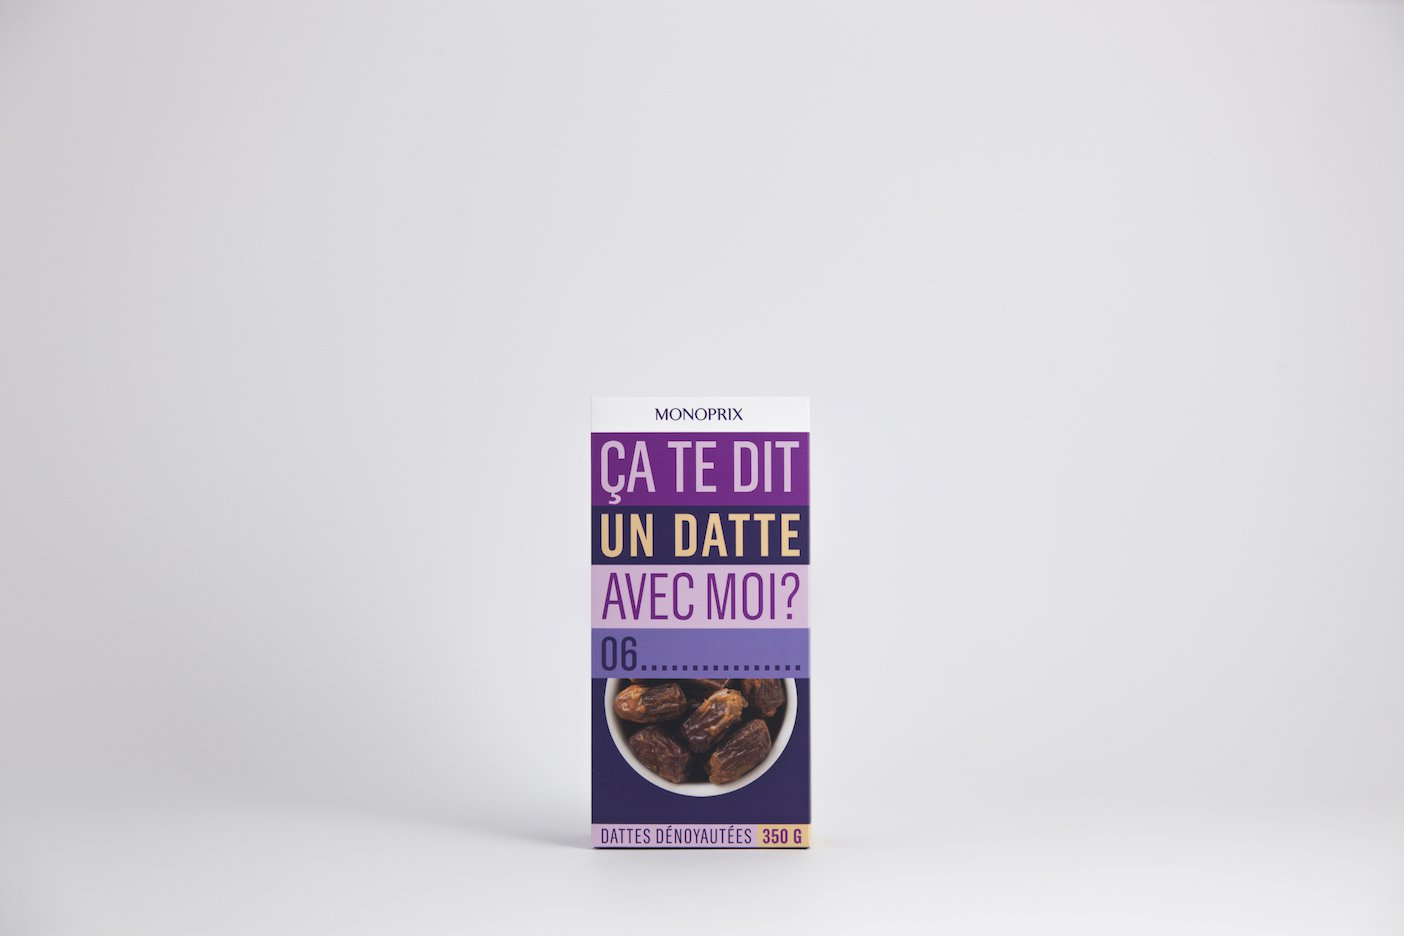 monoprix-campagne-publicitaire-marketing-rosapark-saint-valentin-1